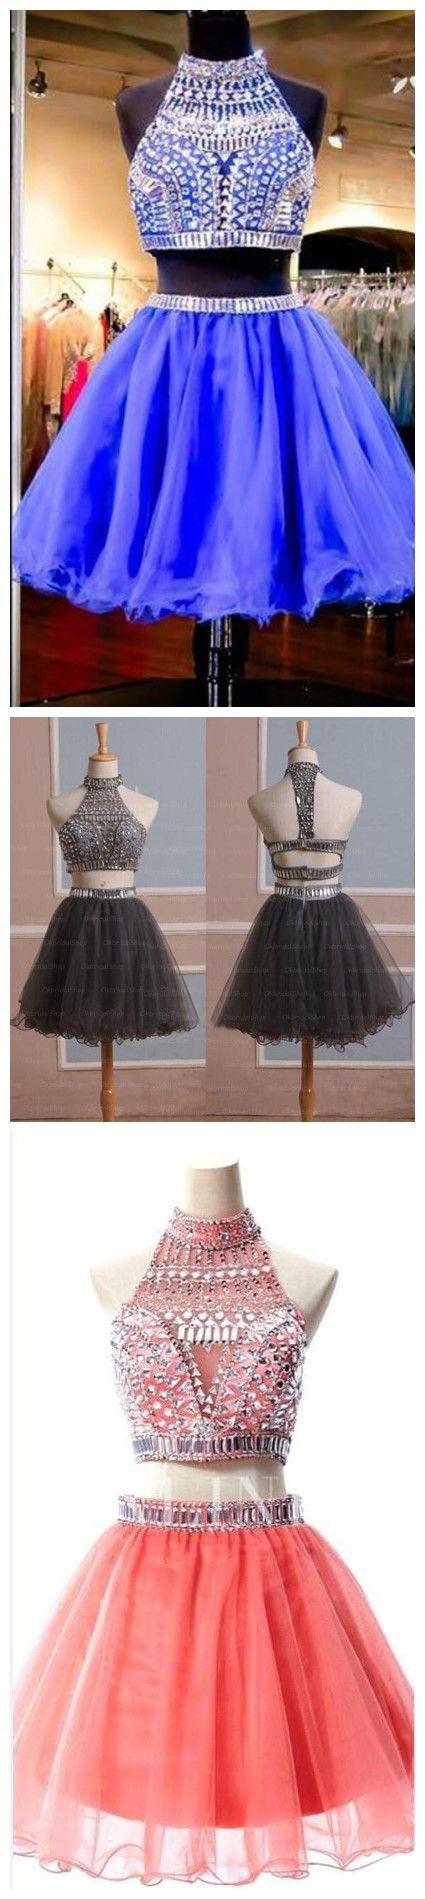 best homecoming dresses images on pinterest homecoming dresses